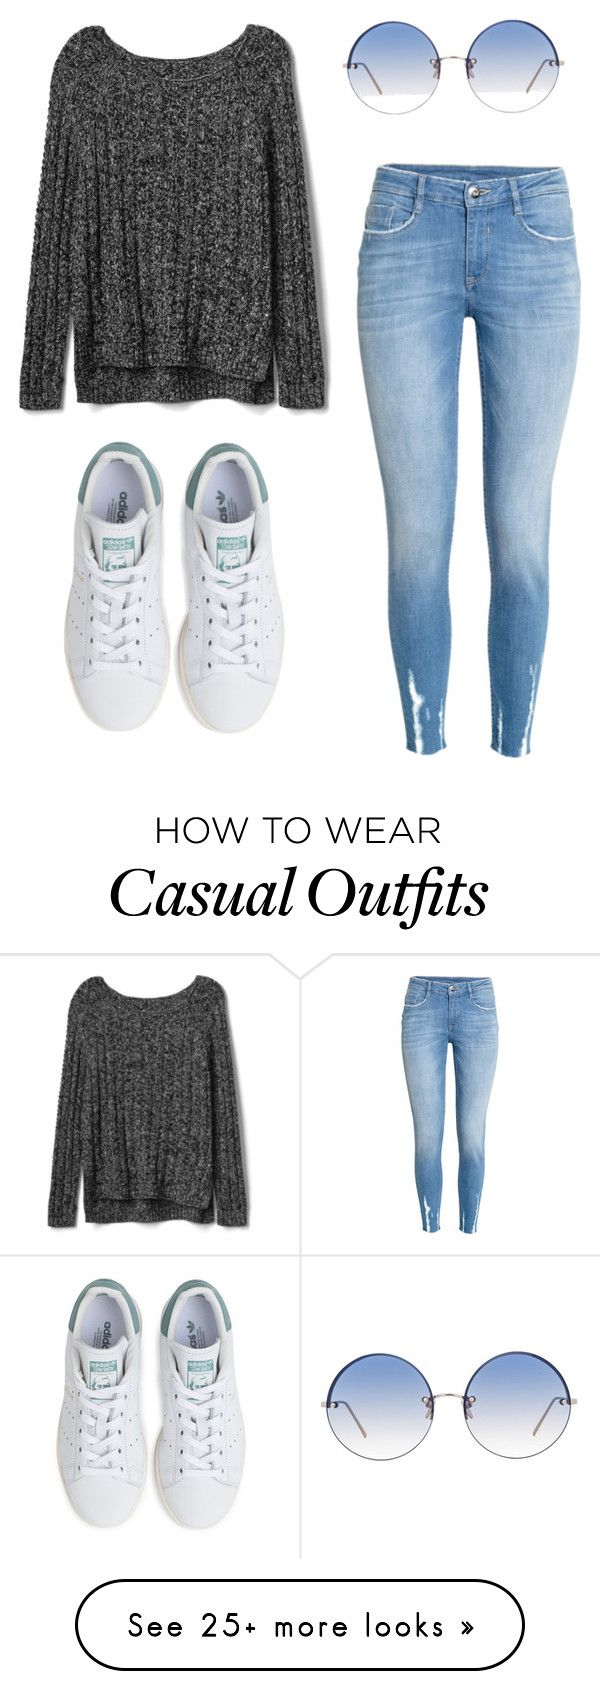 """Casual Saturday"" by nonomournersnofunerals on Polyvore featuring Gap, H&M, adidas and Linda Farrow"